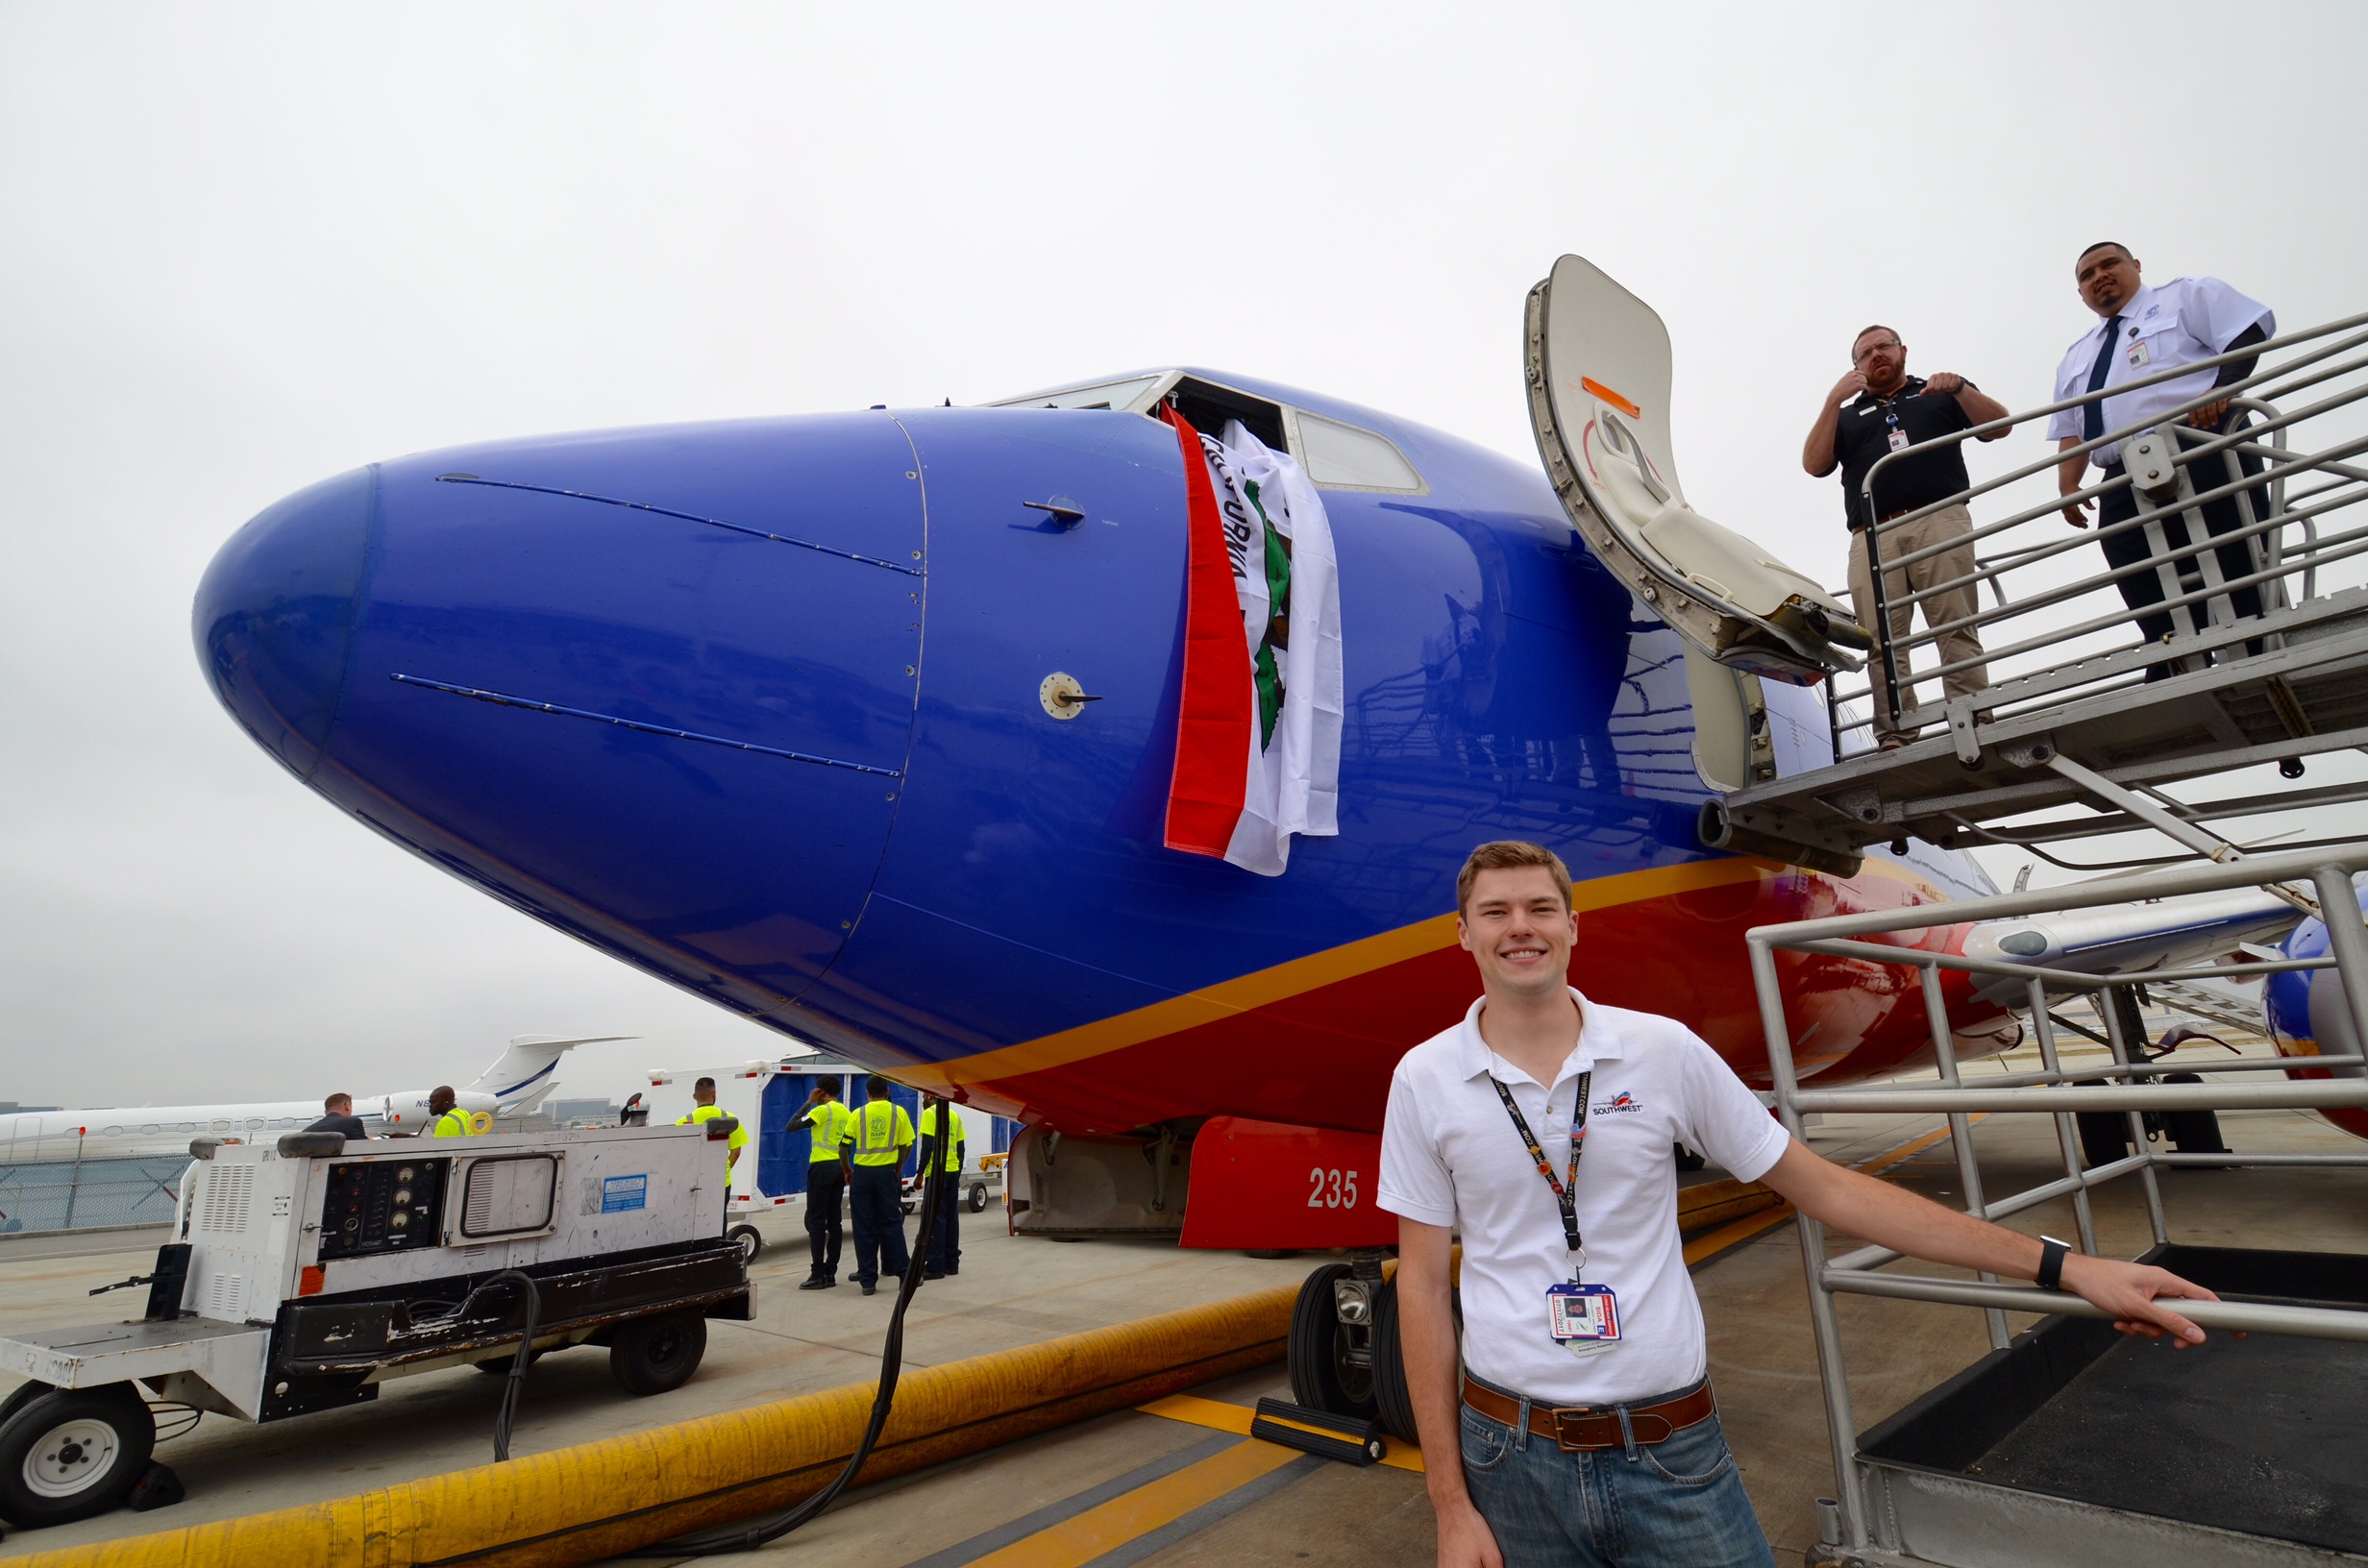 On June 5 2016 Southwest Airlines Began Serving Long Beach Airport Lgb In Calf As An Avgeek I Could Not Be More Excited To Help Bring